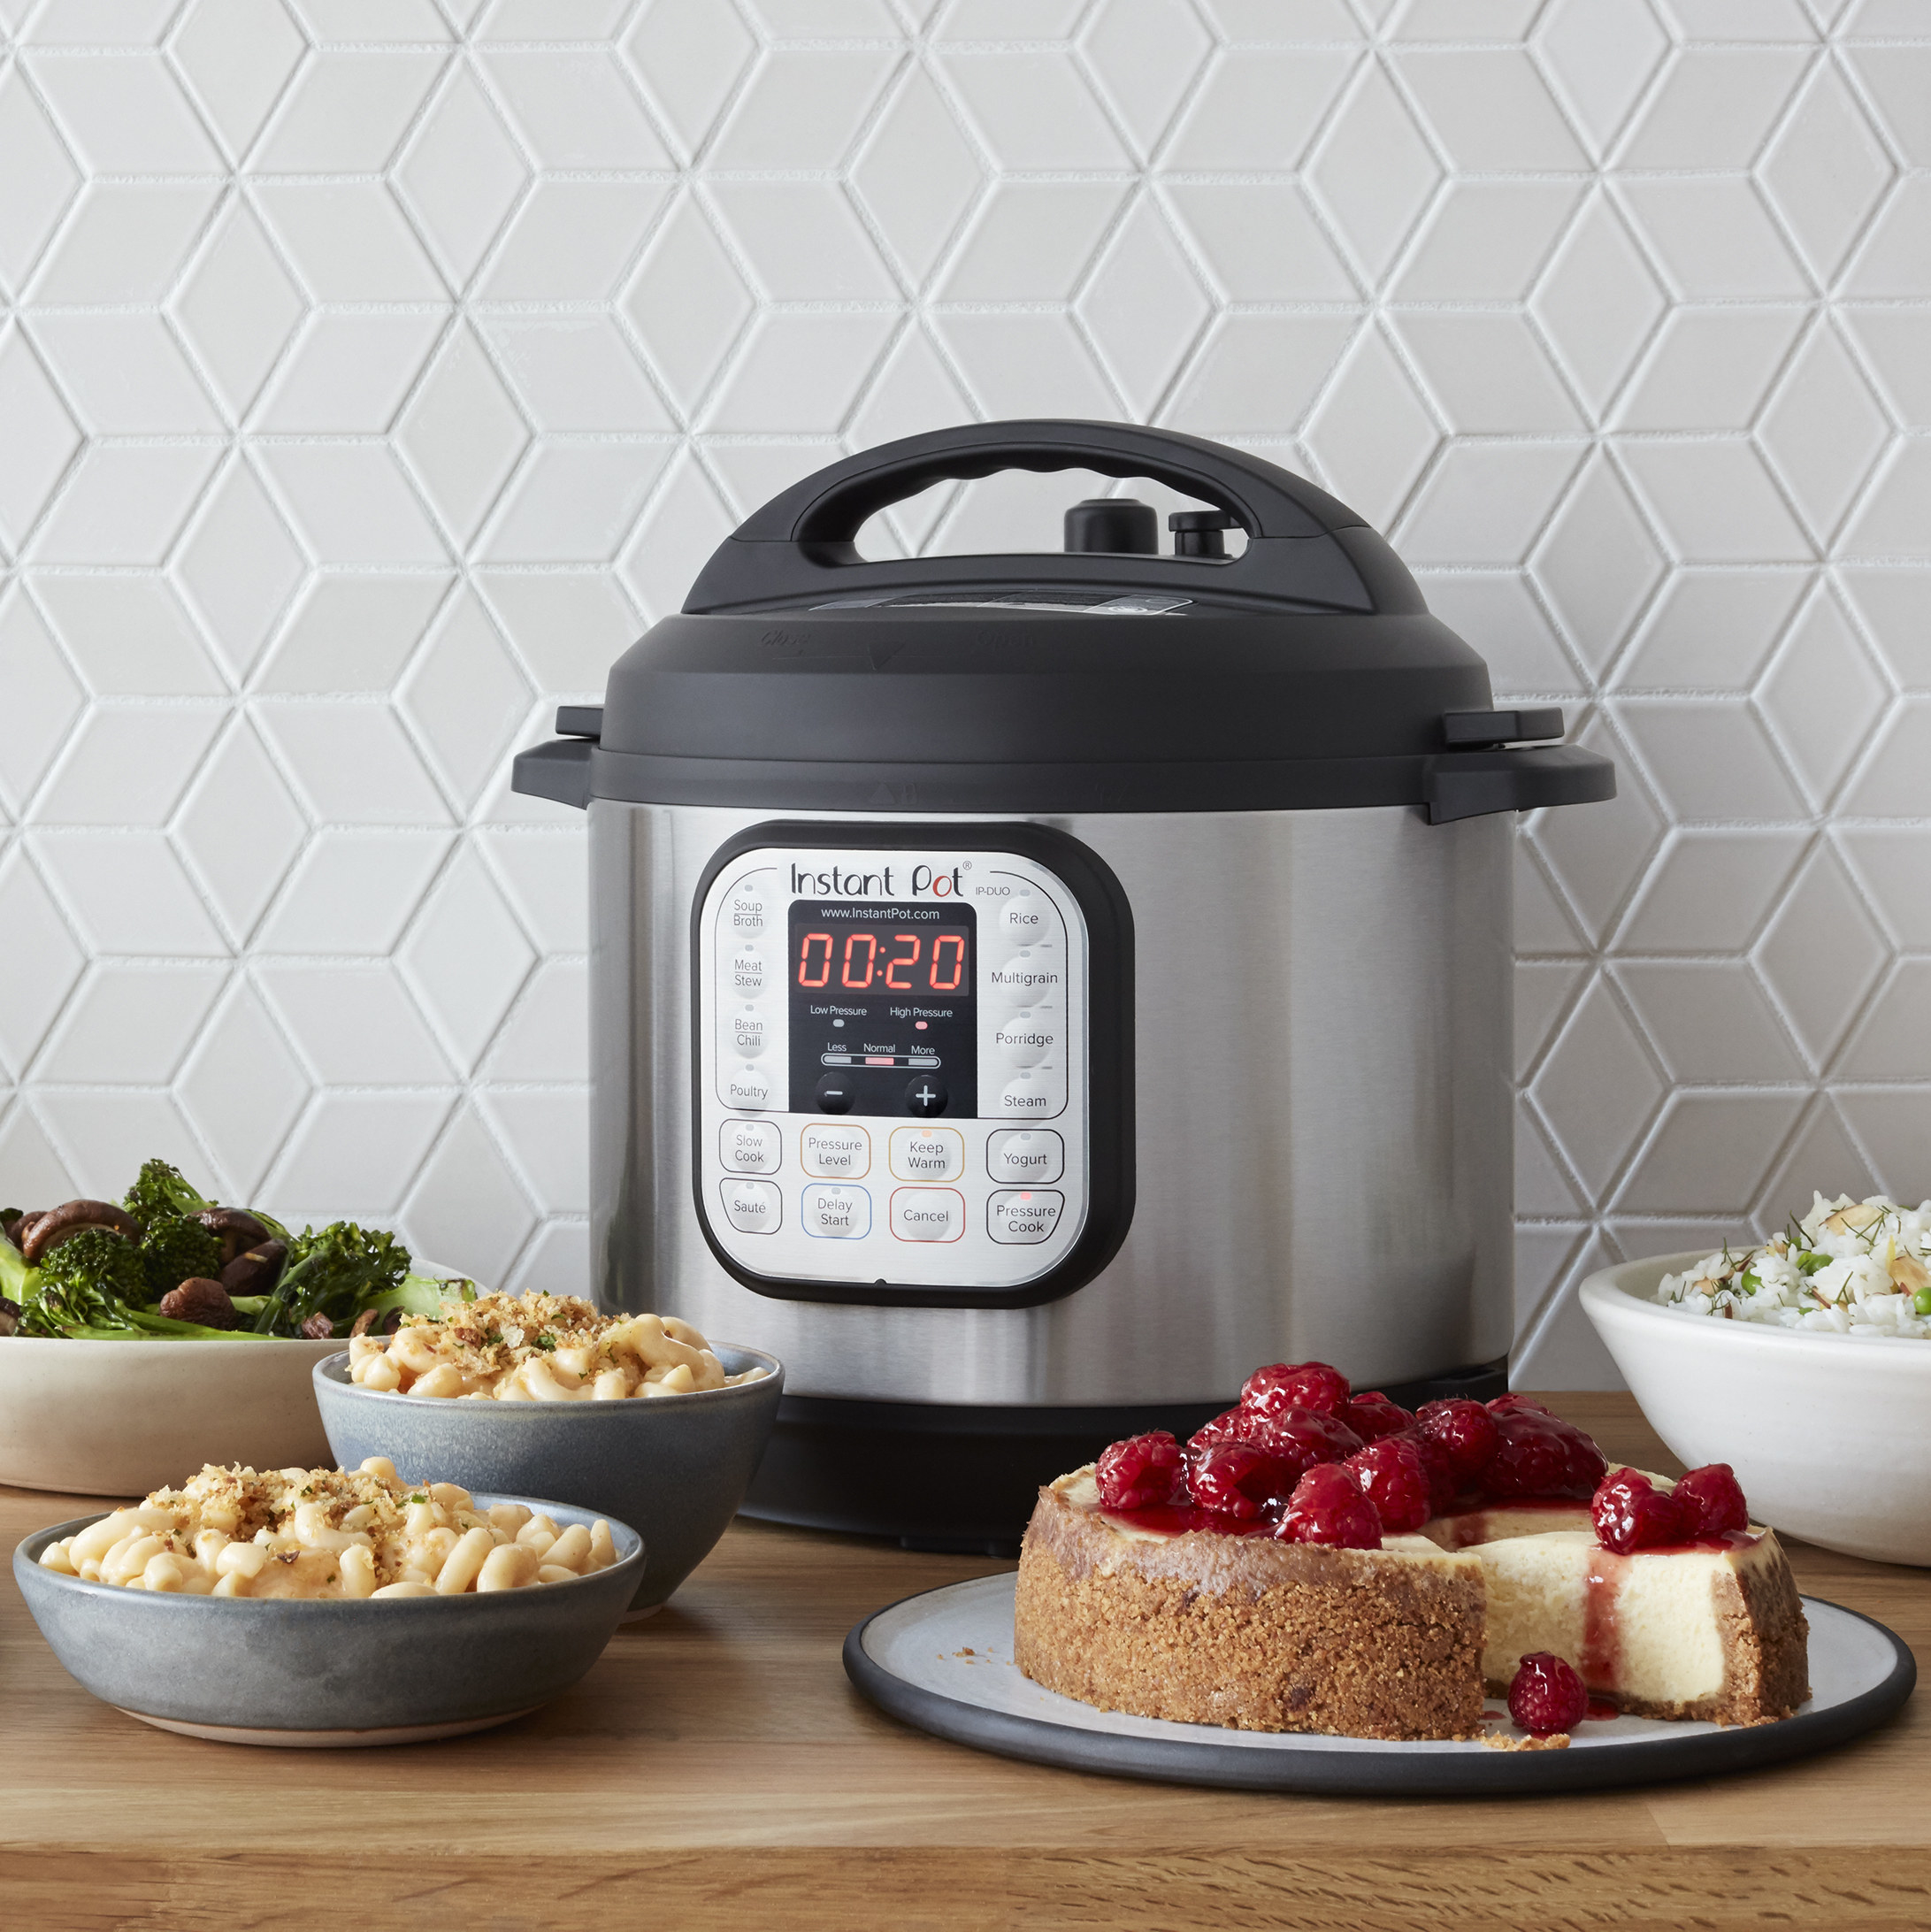 silver instant pot on a table next to vegetables, pasta, and cheesecake